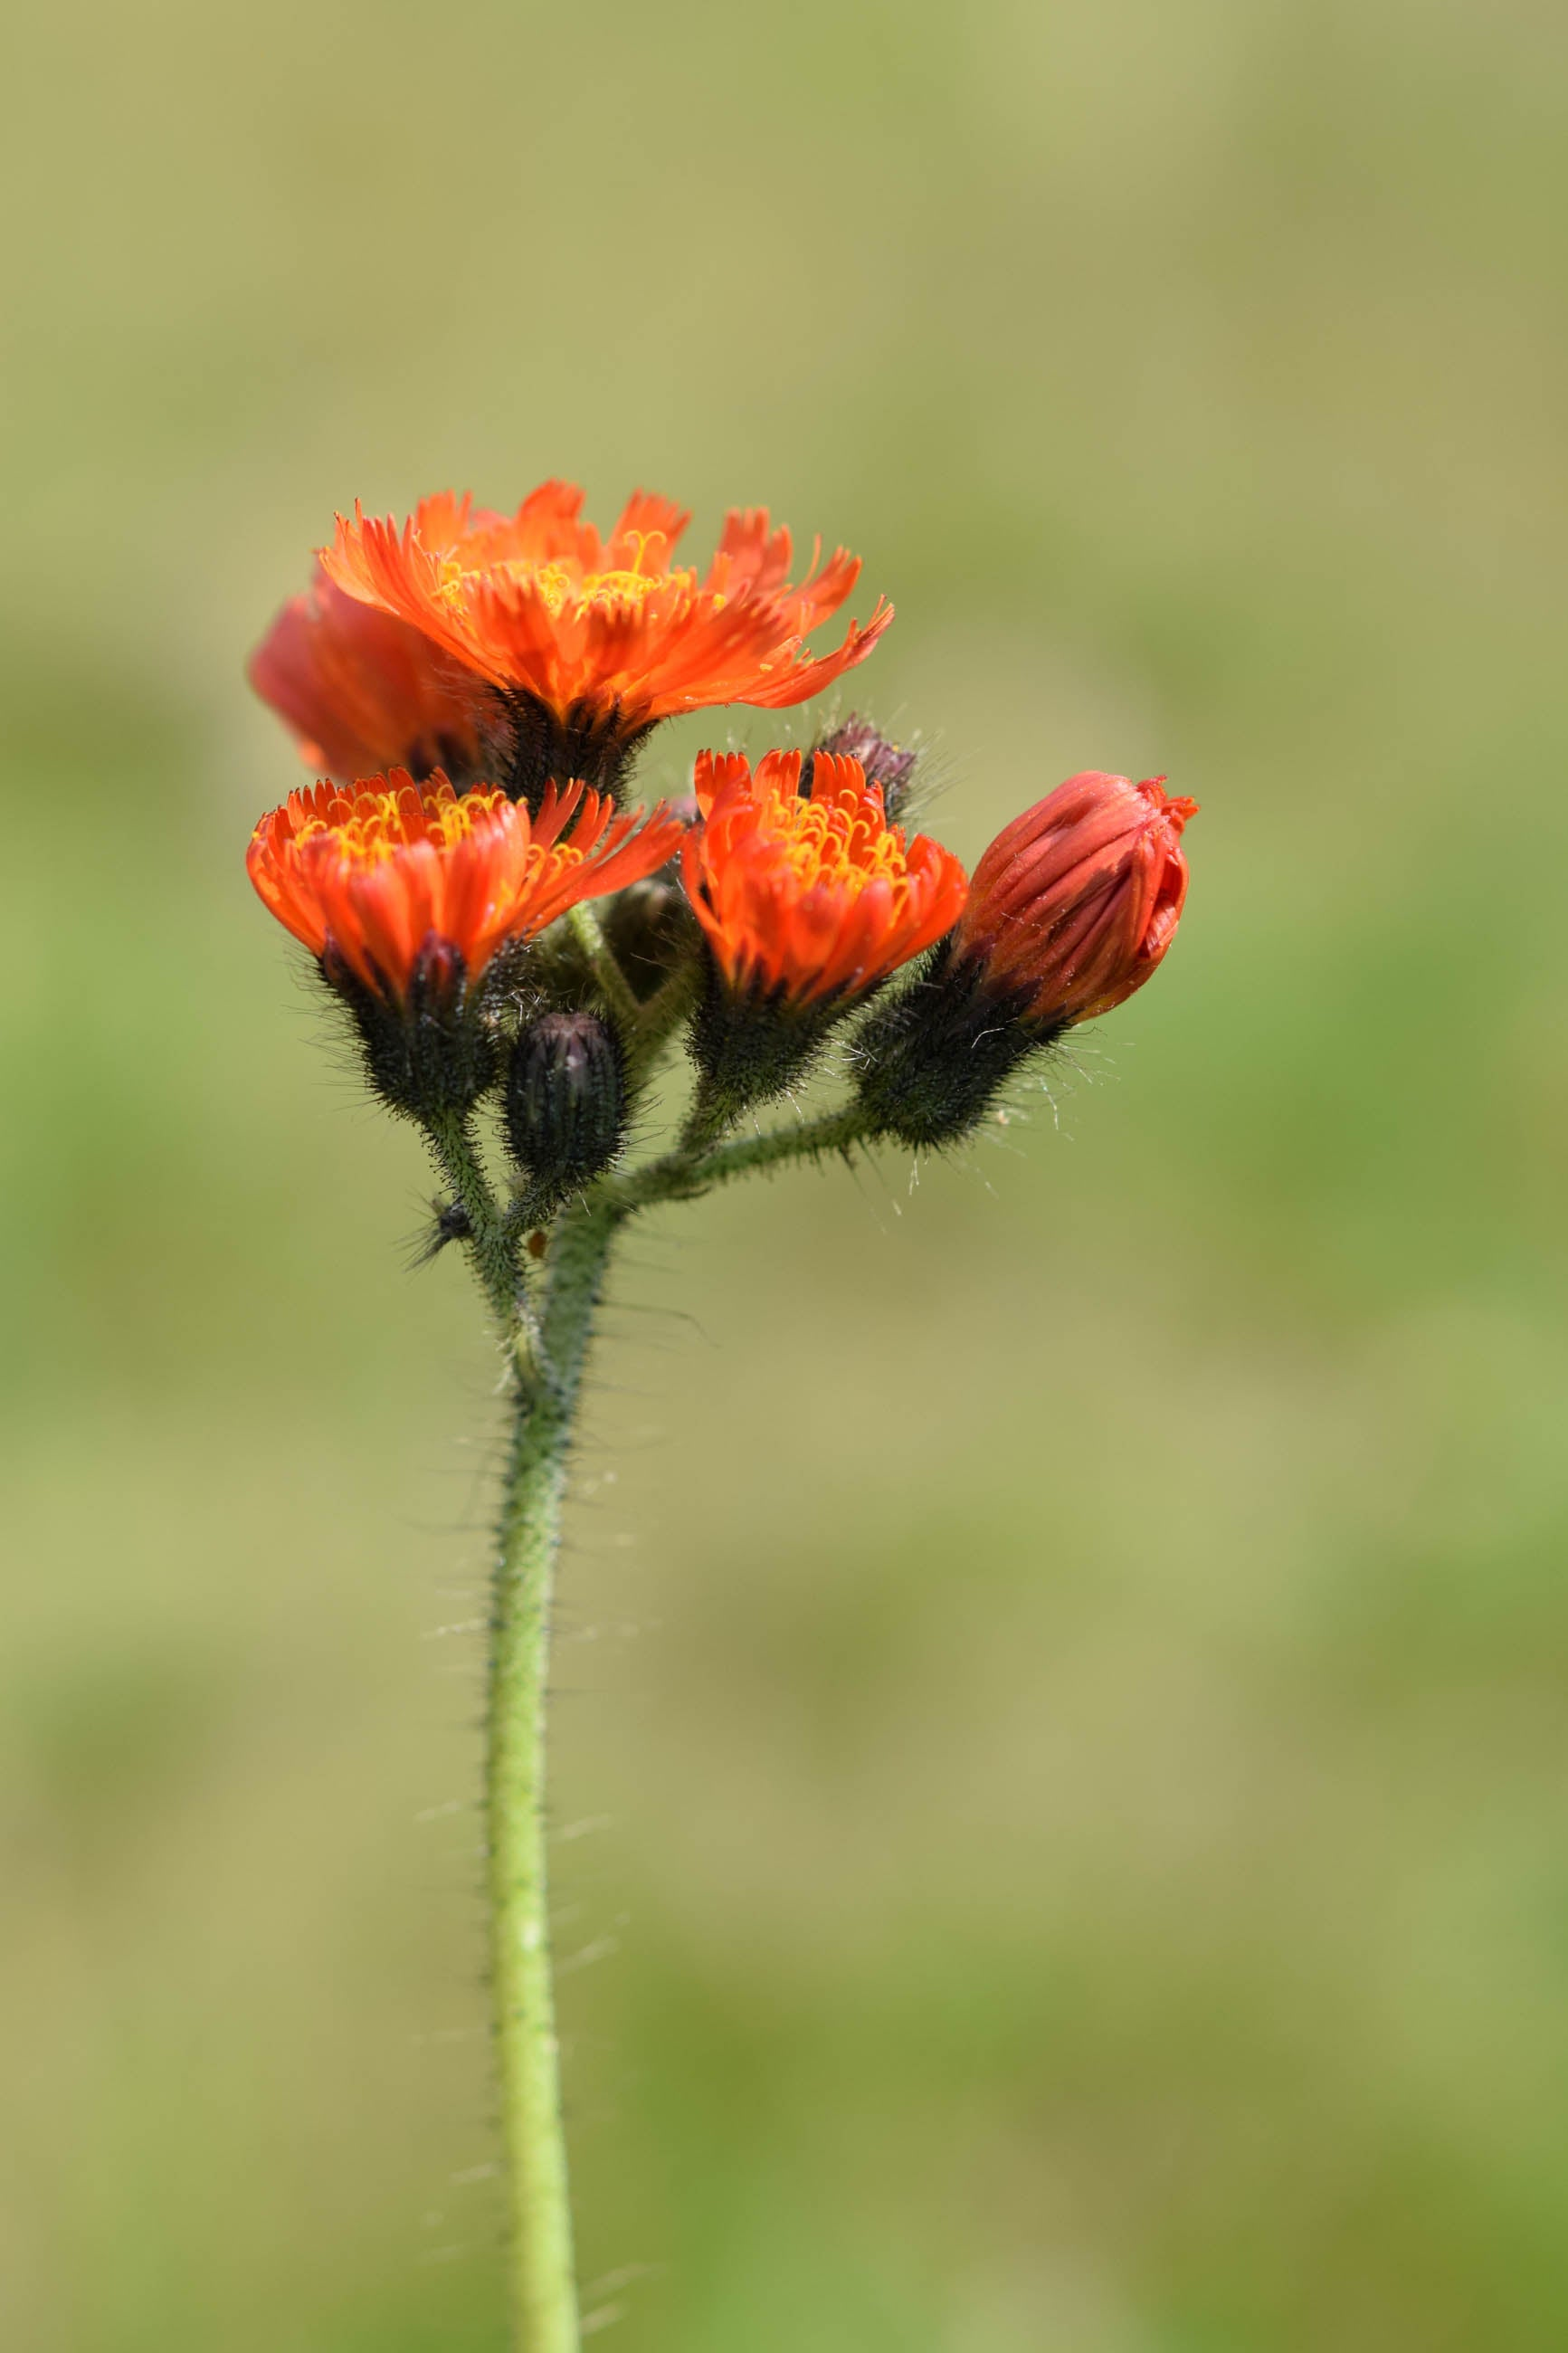 Fox and cubs flowers